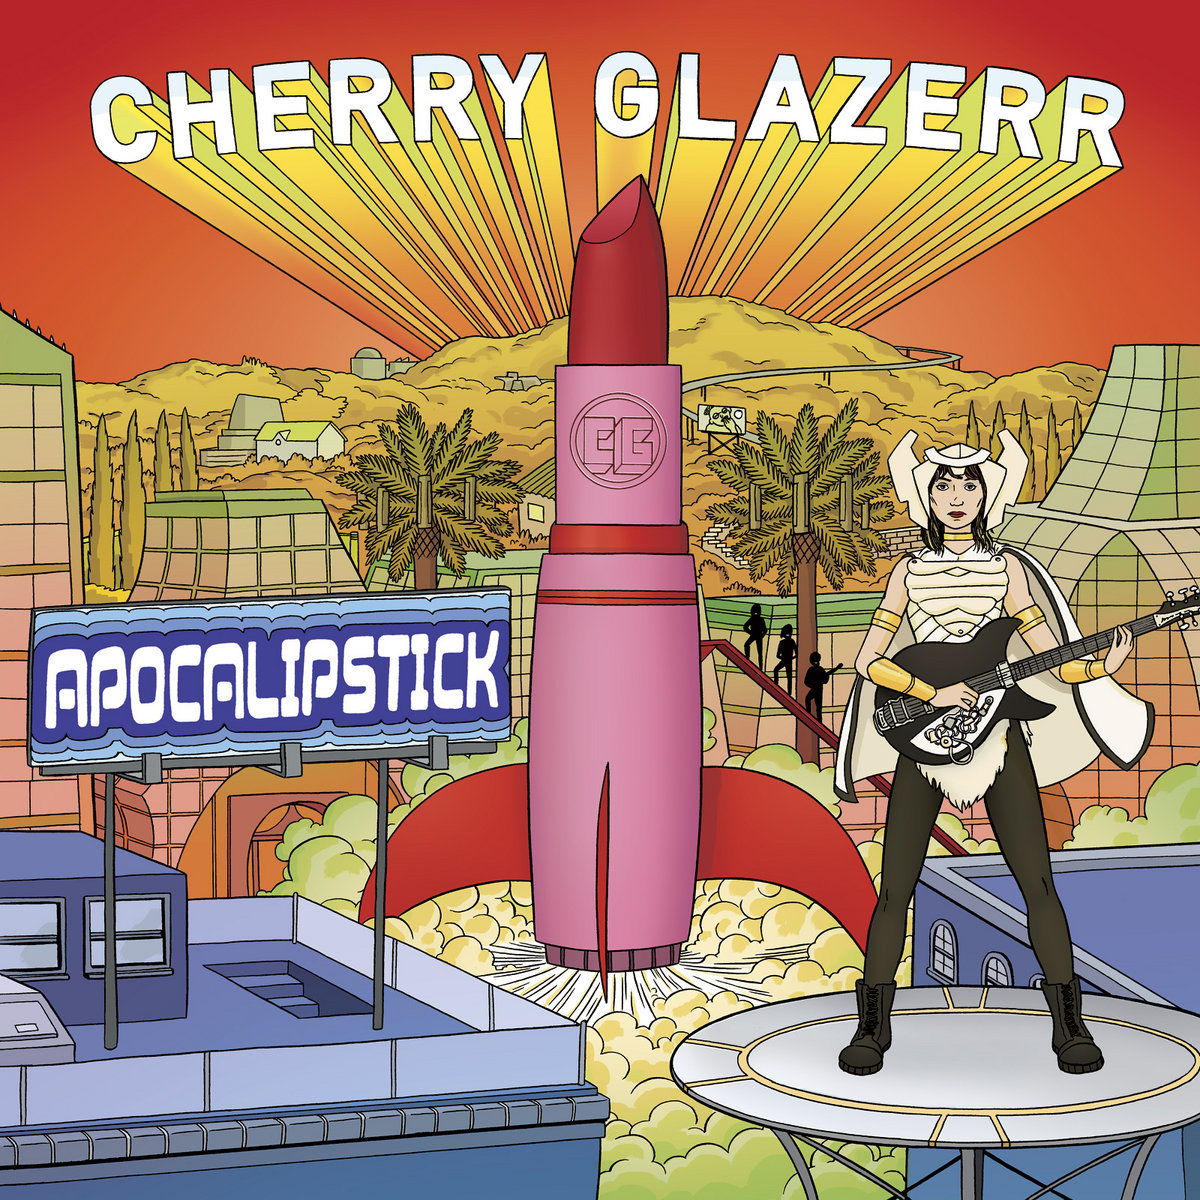 Image result for cherry glazerr apocalipstick